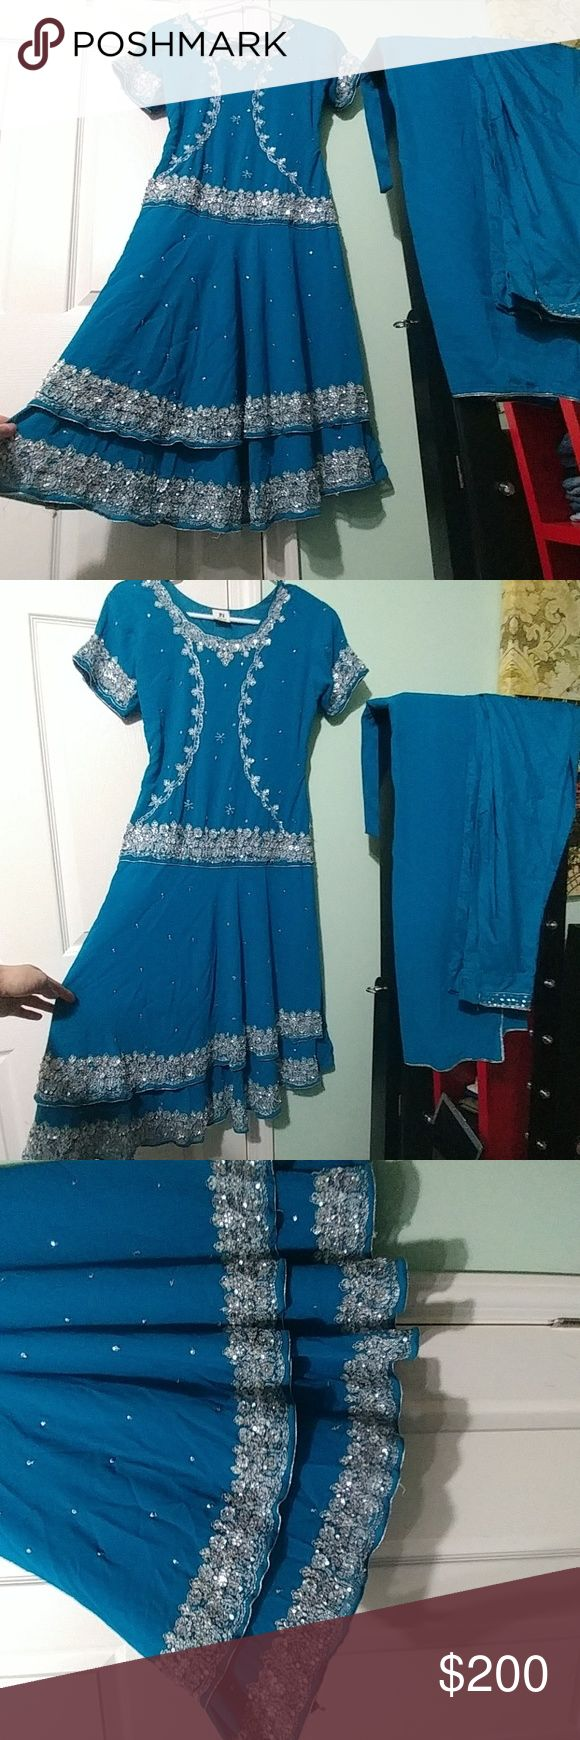 Indian/Pakistani dress with silver work size small Size small Includes top, pants and scarf  Worn a few times but overall like new condition. The only flaw is shown in 2 photos. One loop got undone and needs to be sewn back on - easy fix. Save today! Dresses Midi